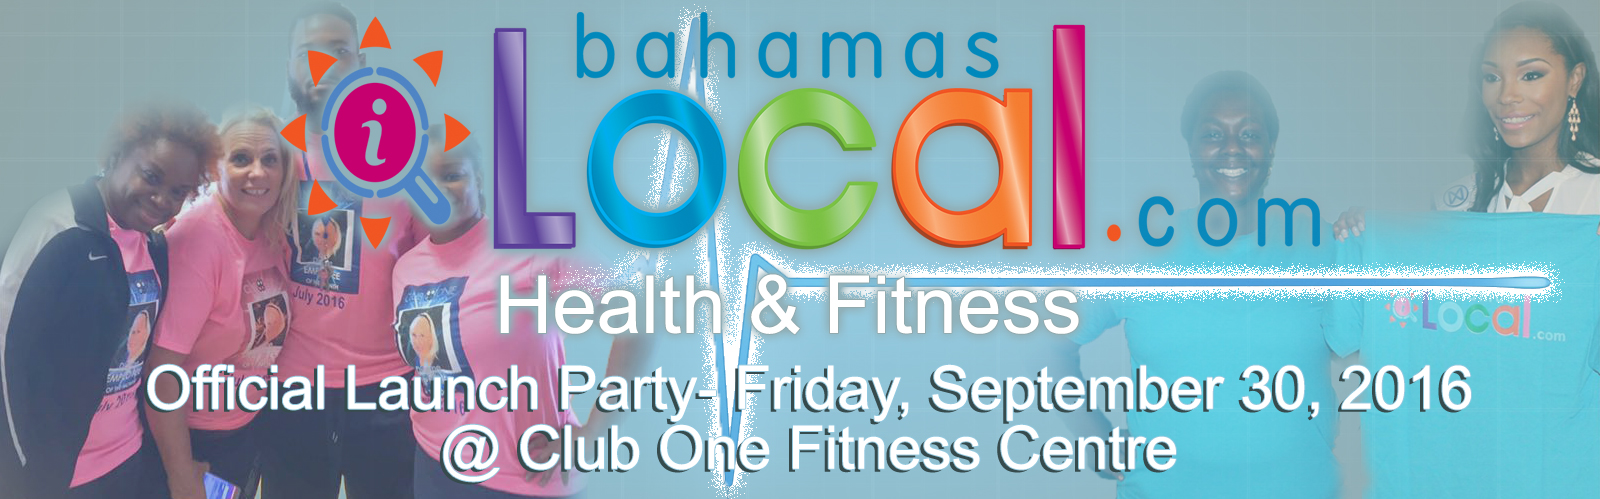 BahamasLocal.com Health & Fitness Launch Party